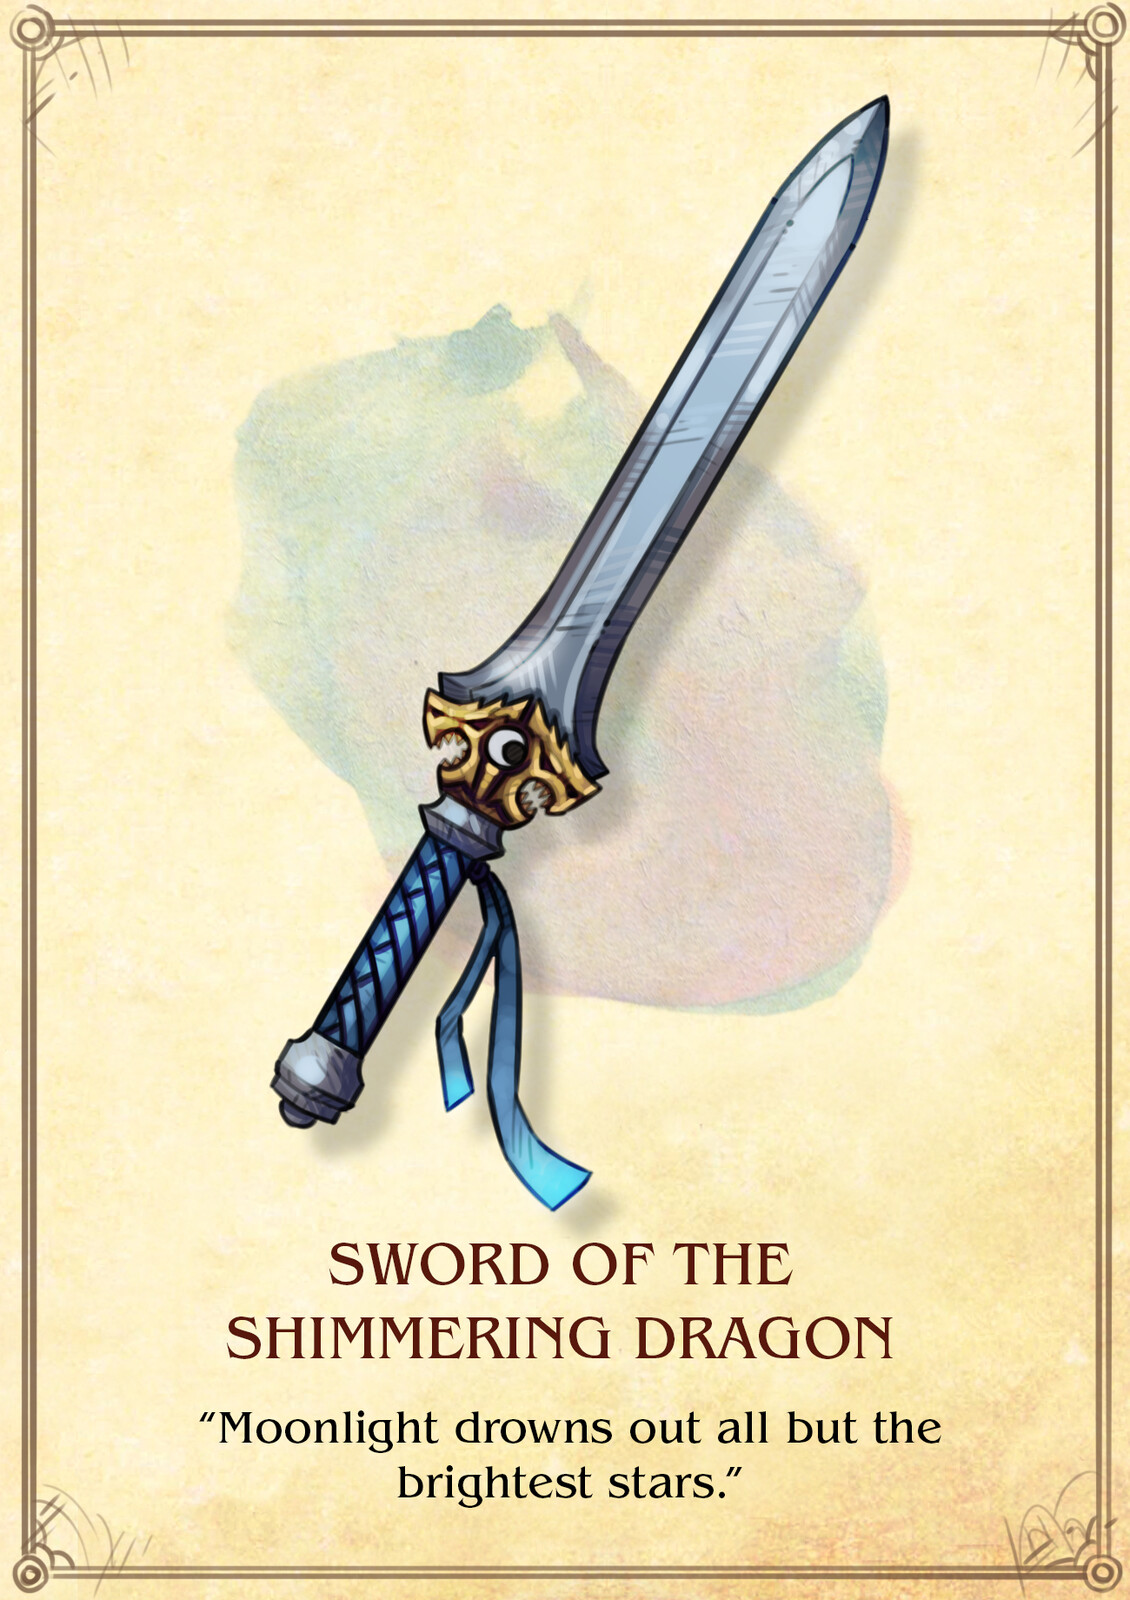 Sword of the Shimmering Dragon